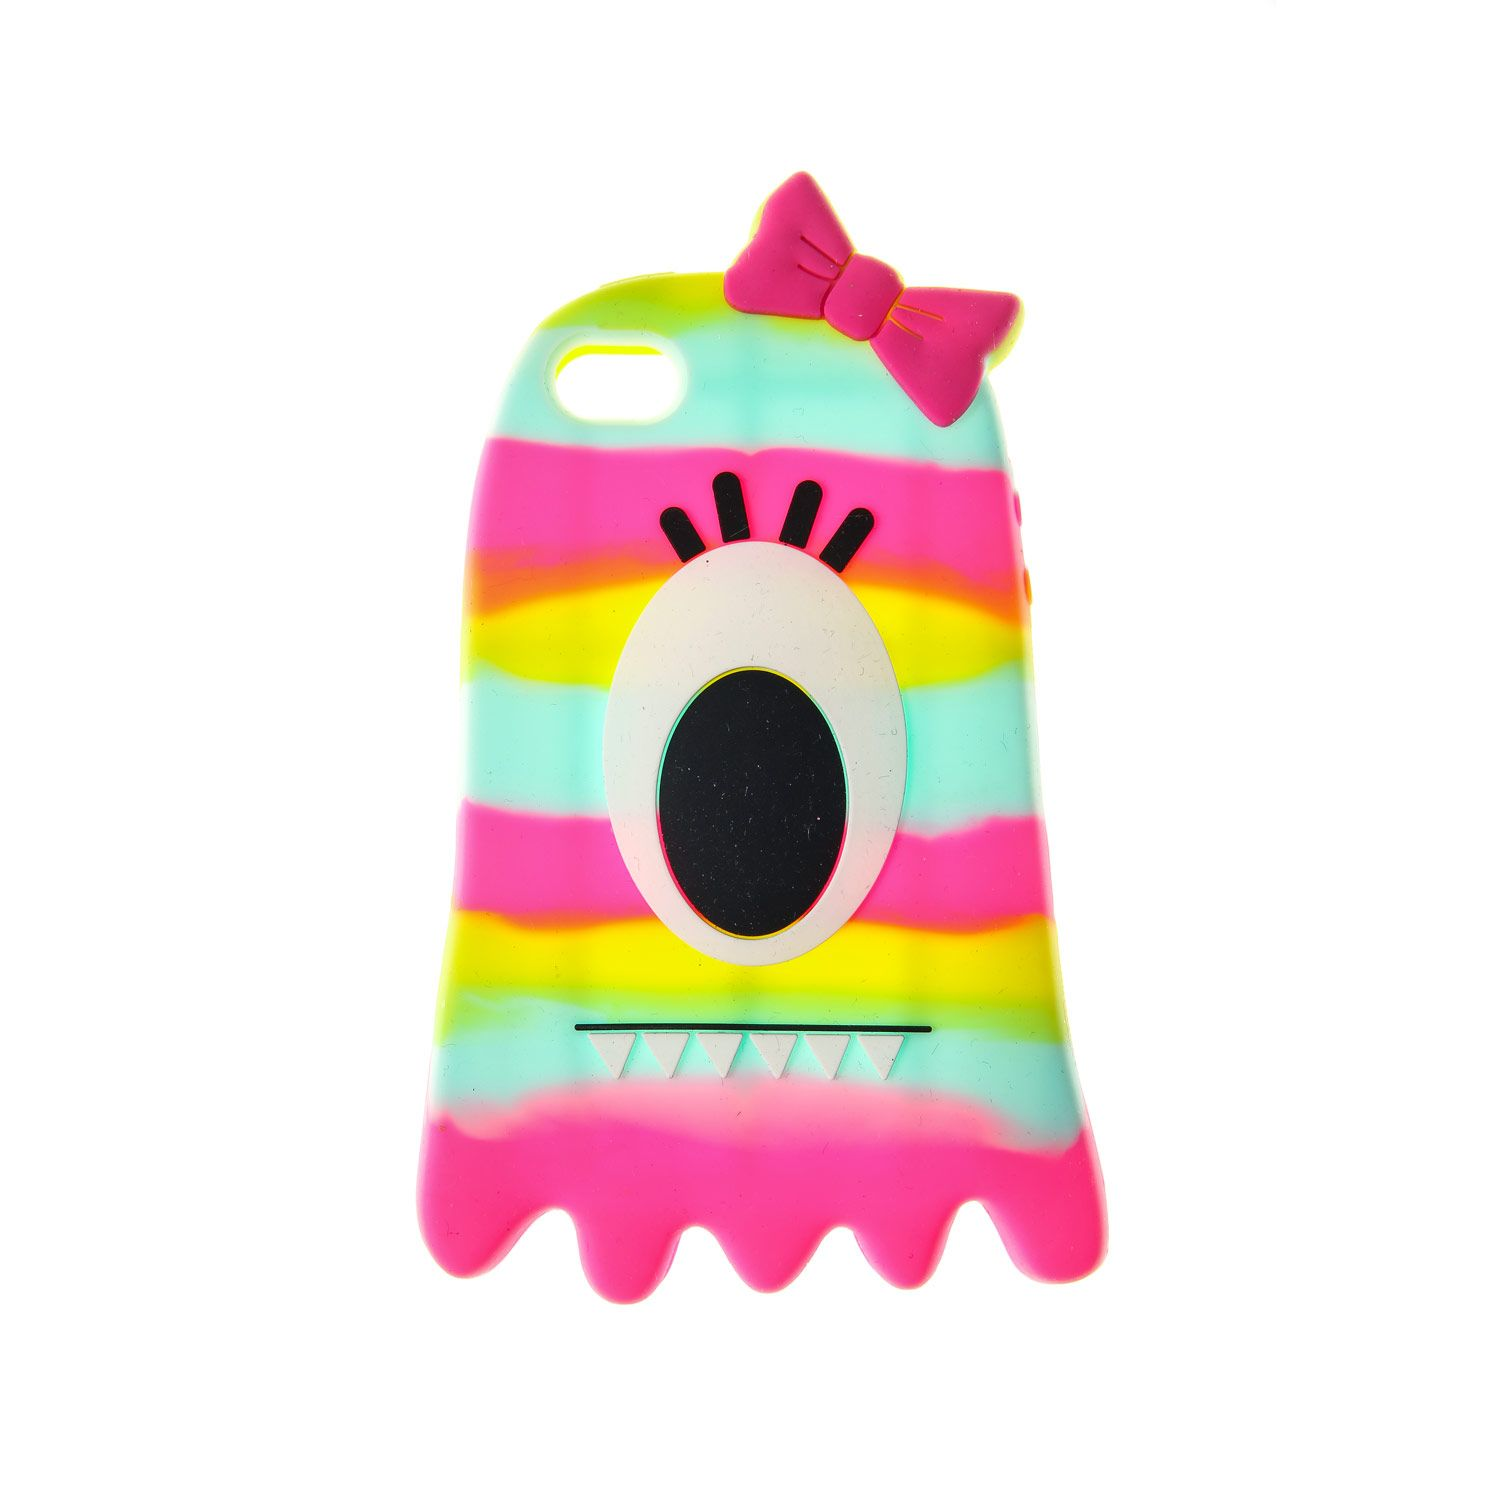 92cc81e4a3 Details about Claire's Girls & Womens Rainbow Blob Monster - Iphone ...